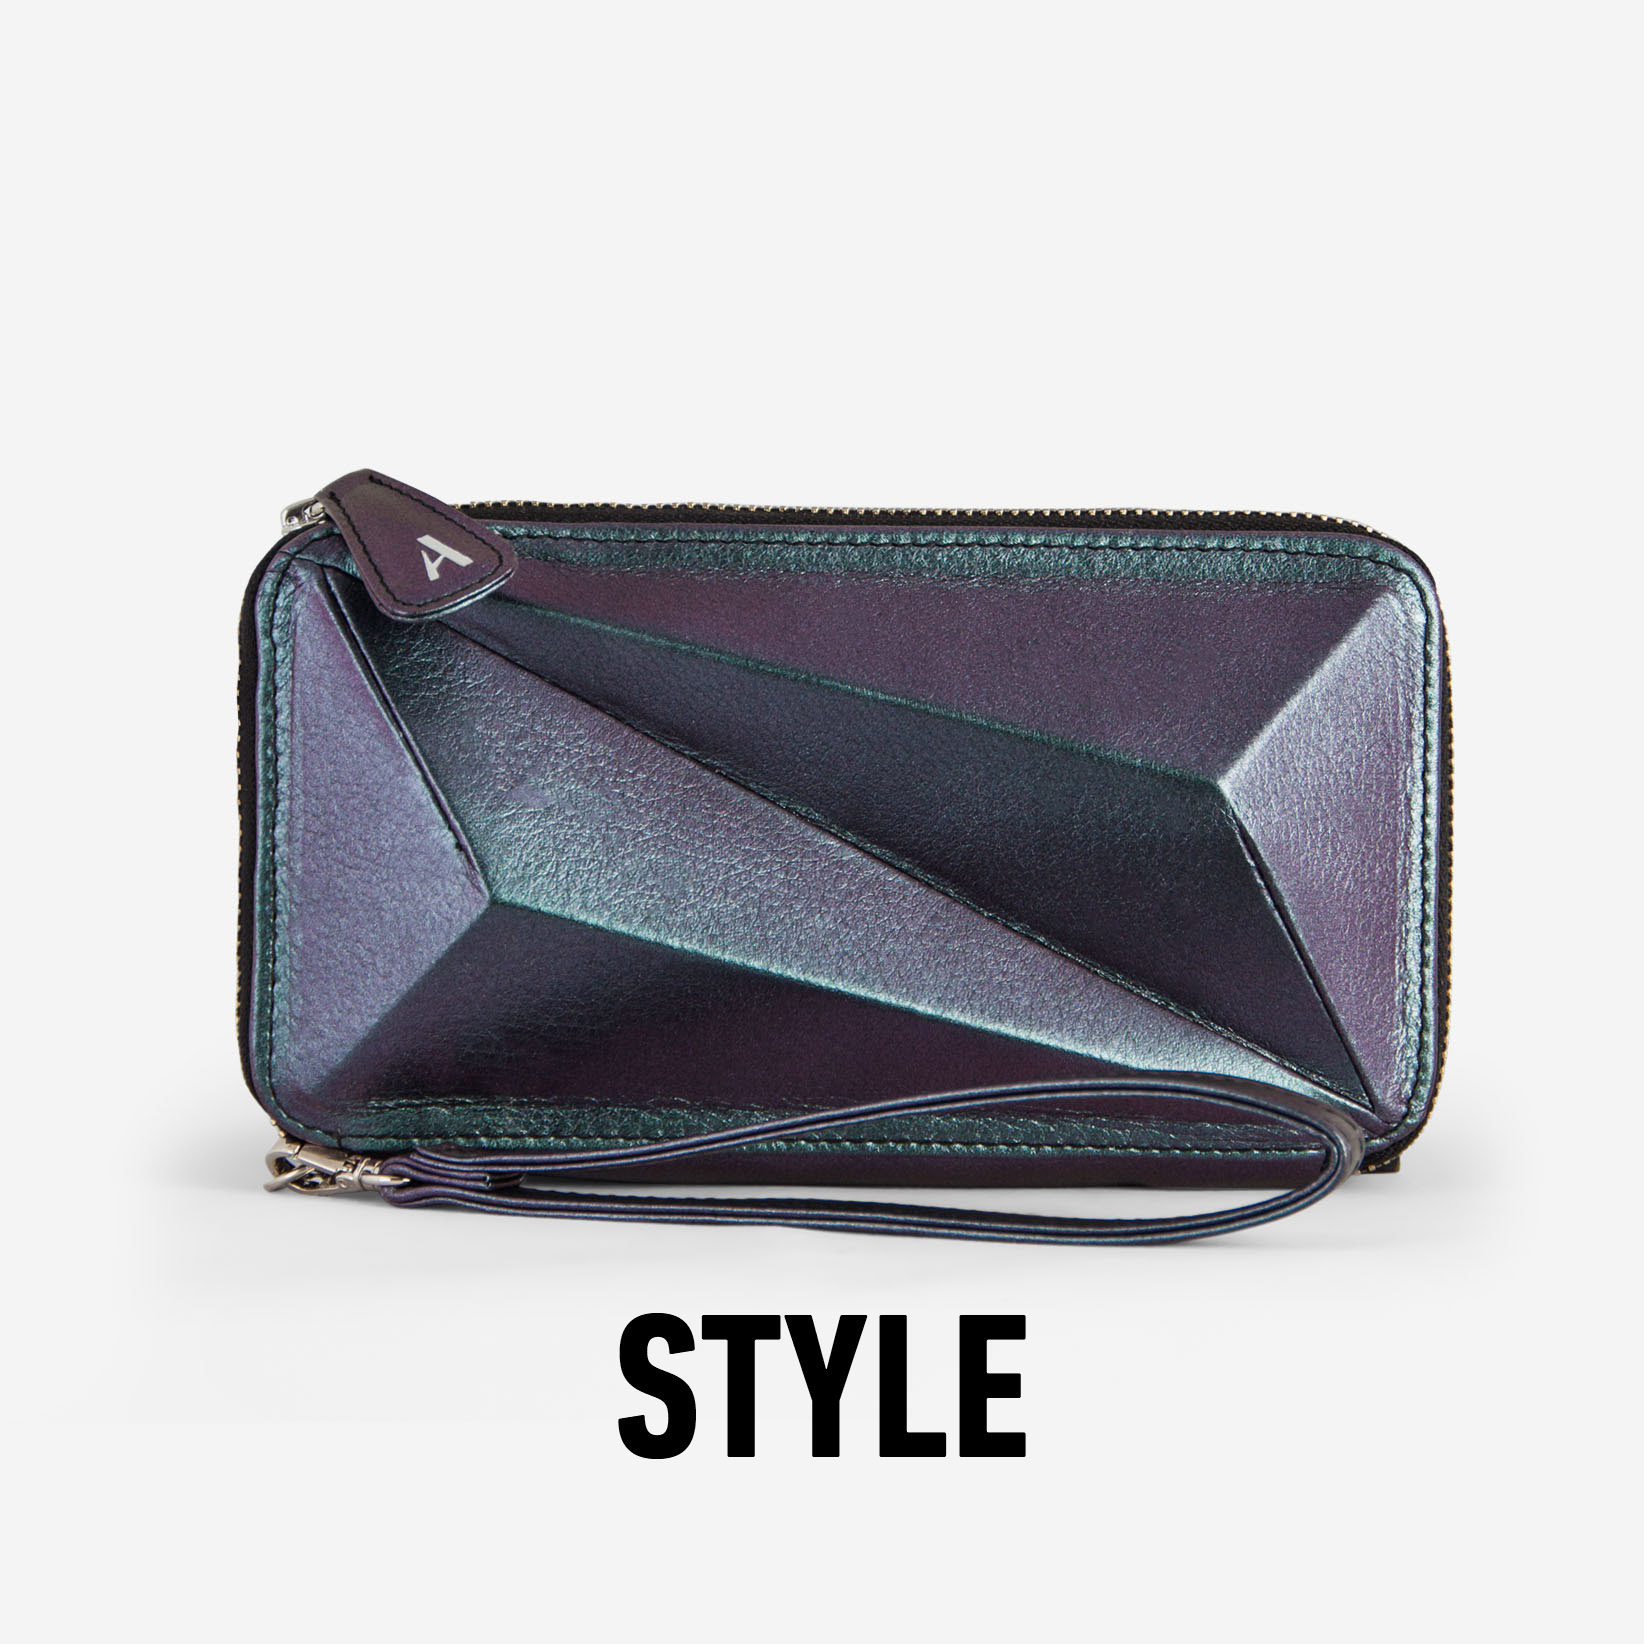 2_arutti_which_style_is-your_style